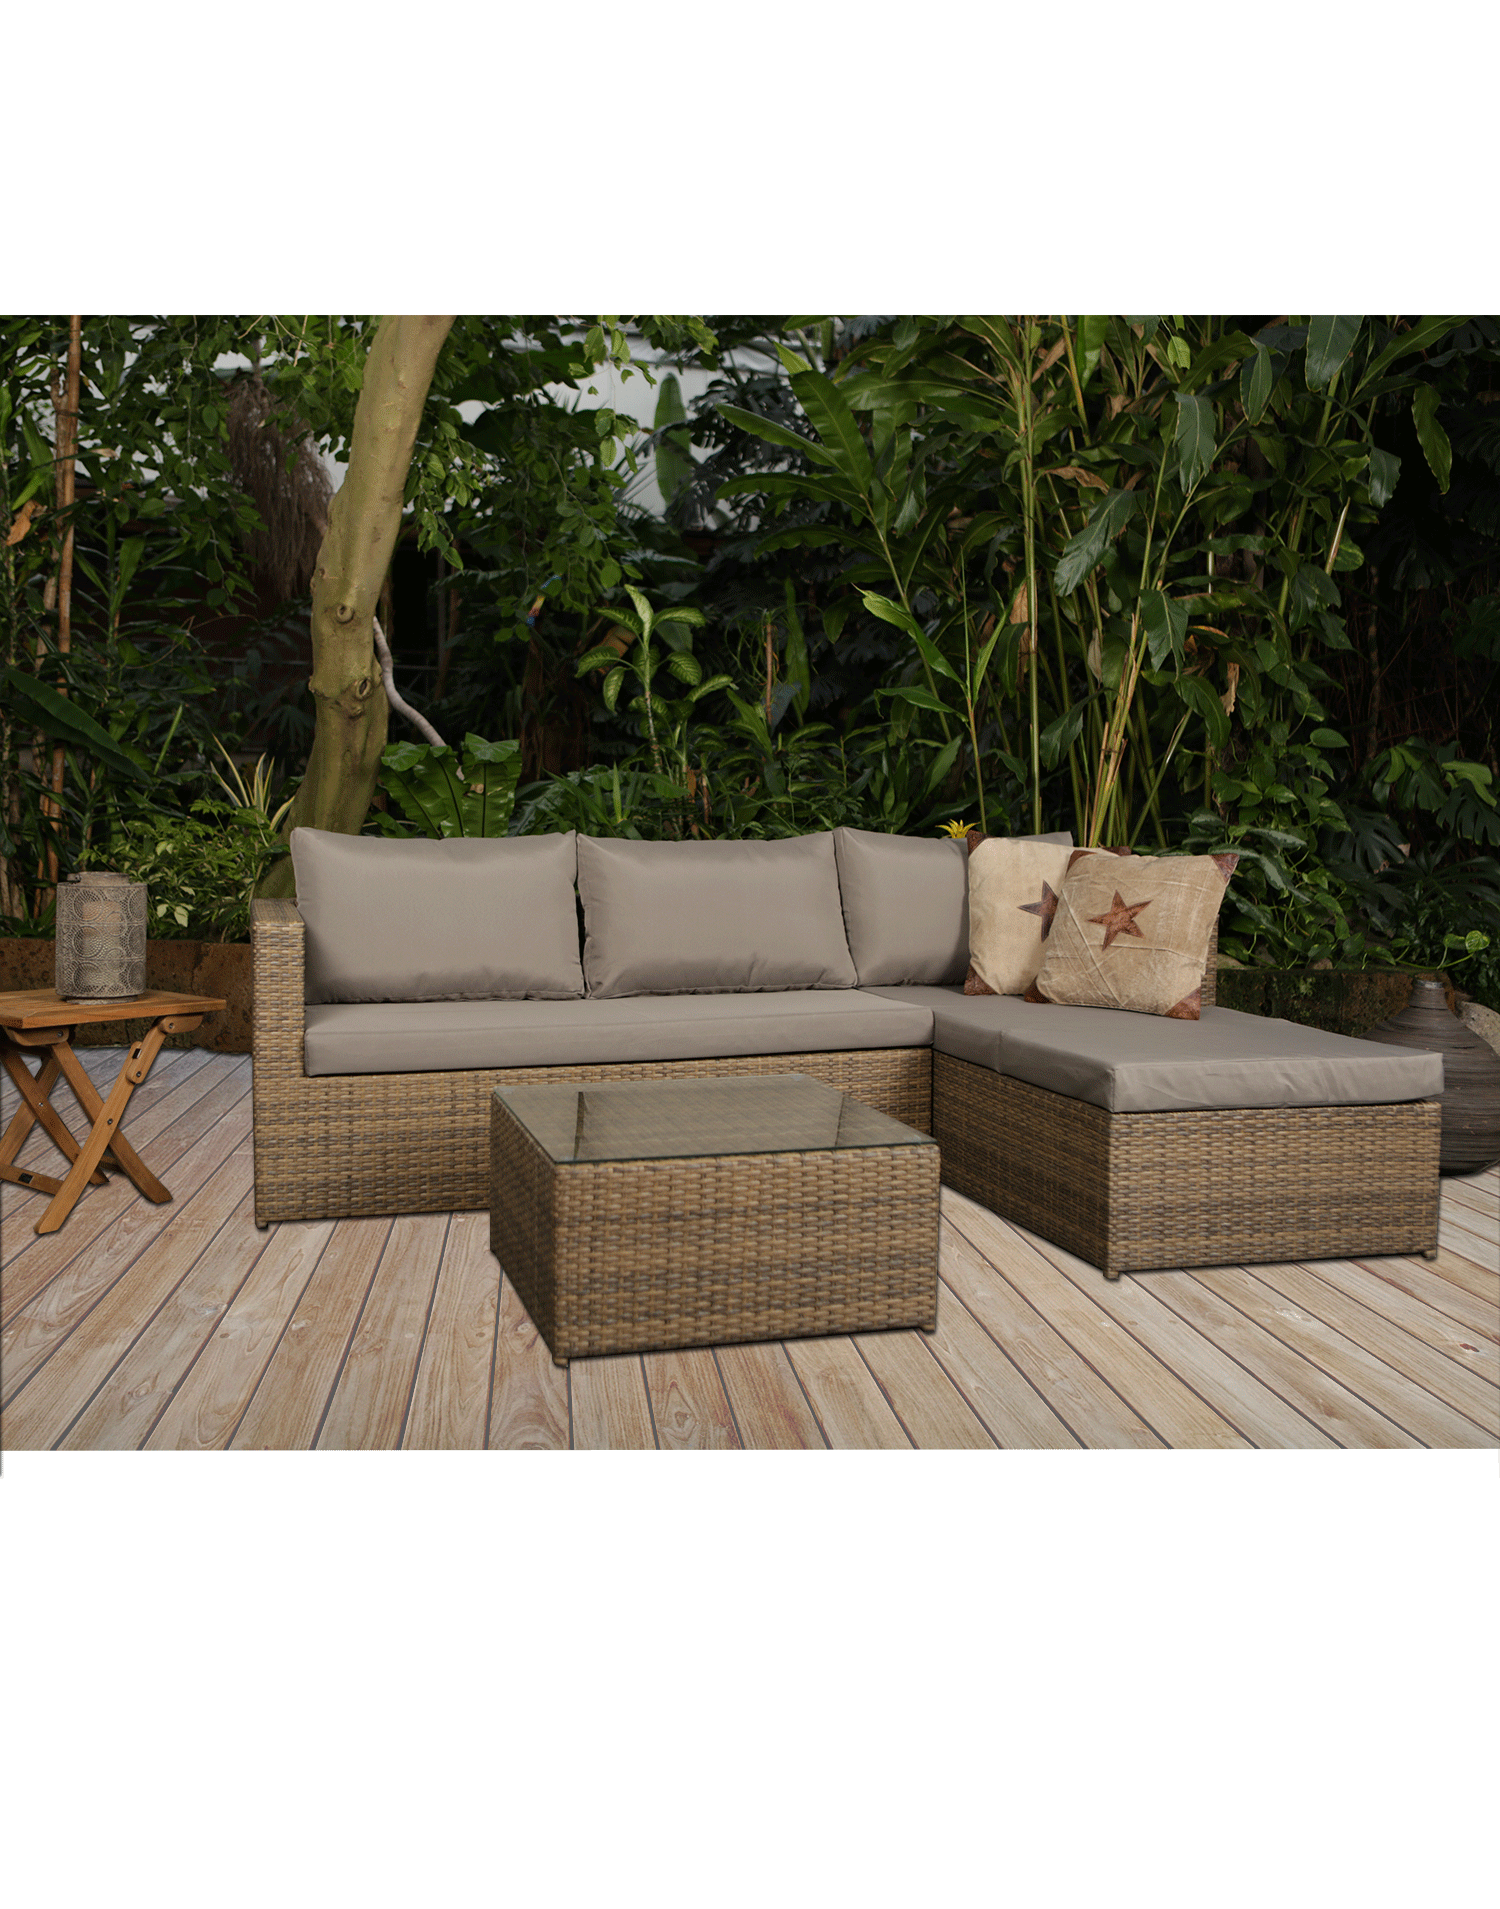 Garten Moebel Rattan Lounge Set Malibu Top Aktion Teakland Ch